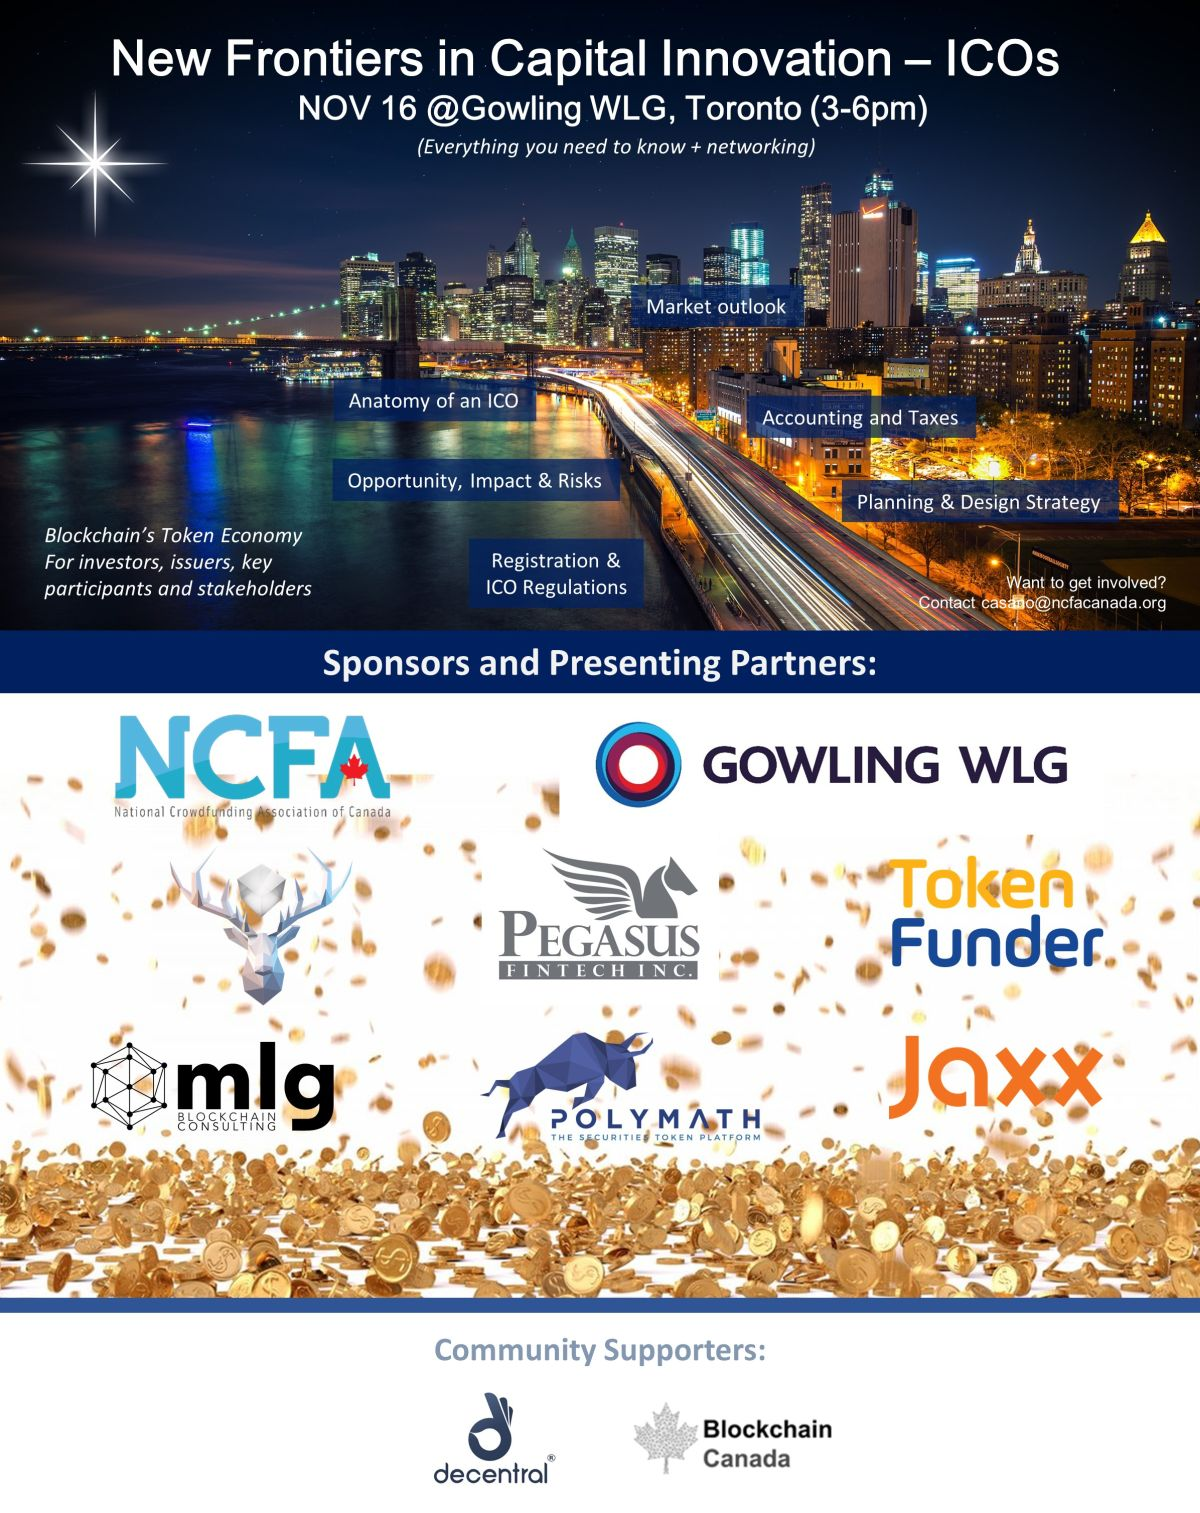 NCFA Nov 17 New Frontiers Blockchain and ICO Event